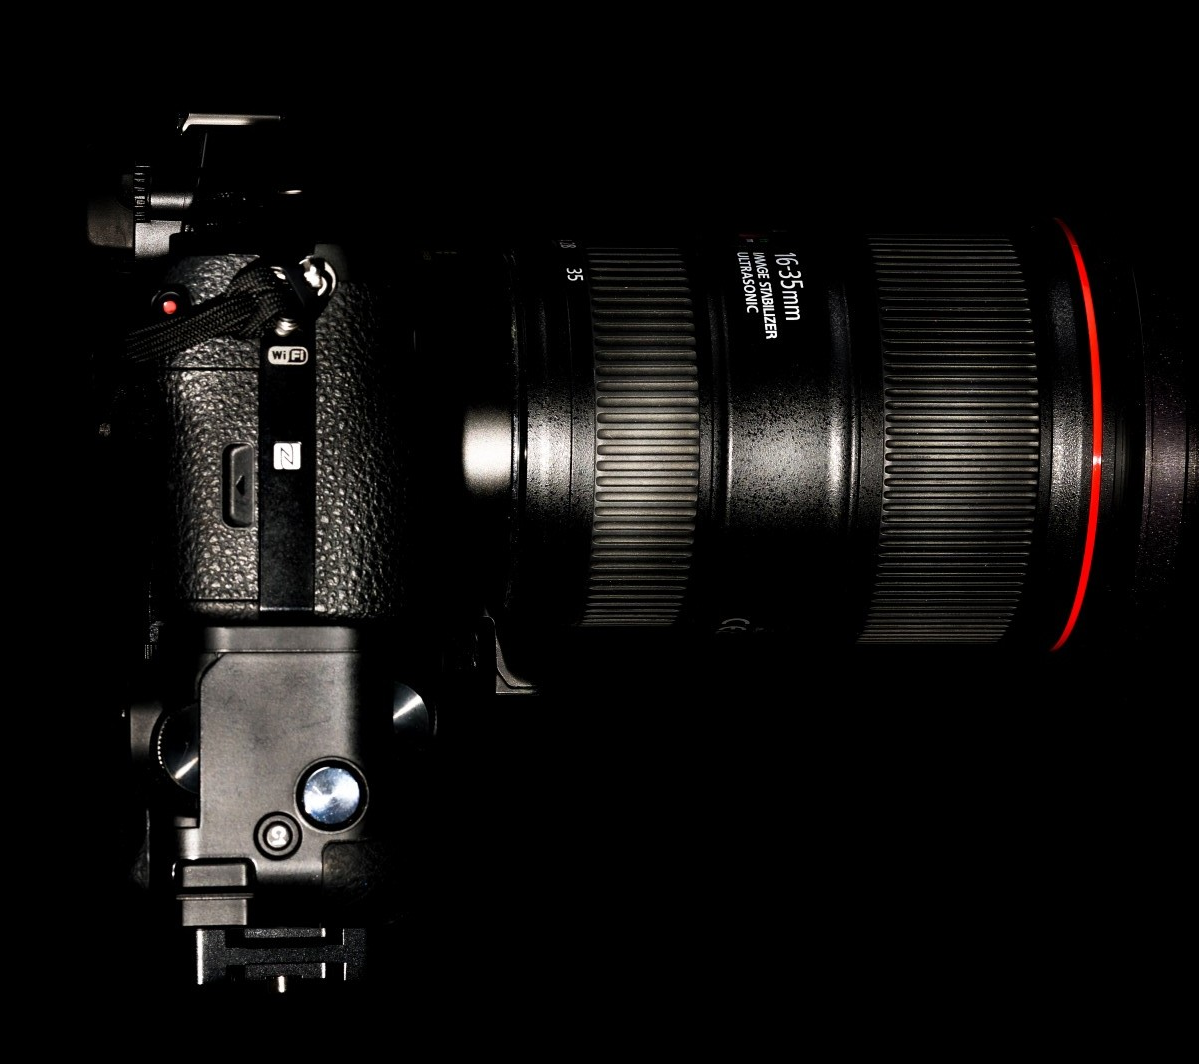 Not so compact! - Sony A7r with battery grip attached, L-Plate and Canon 16-35mm